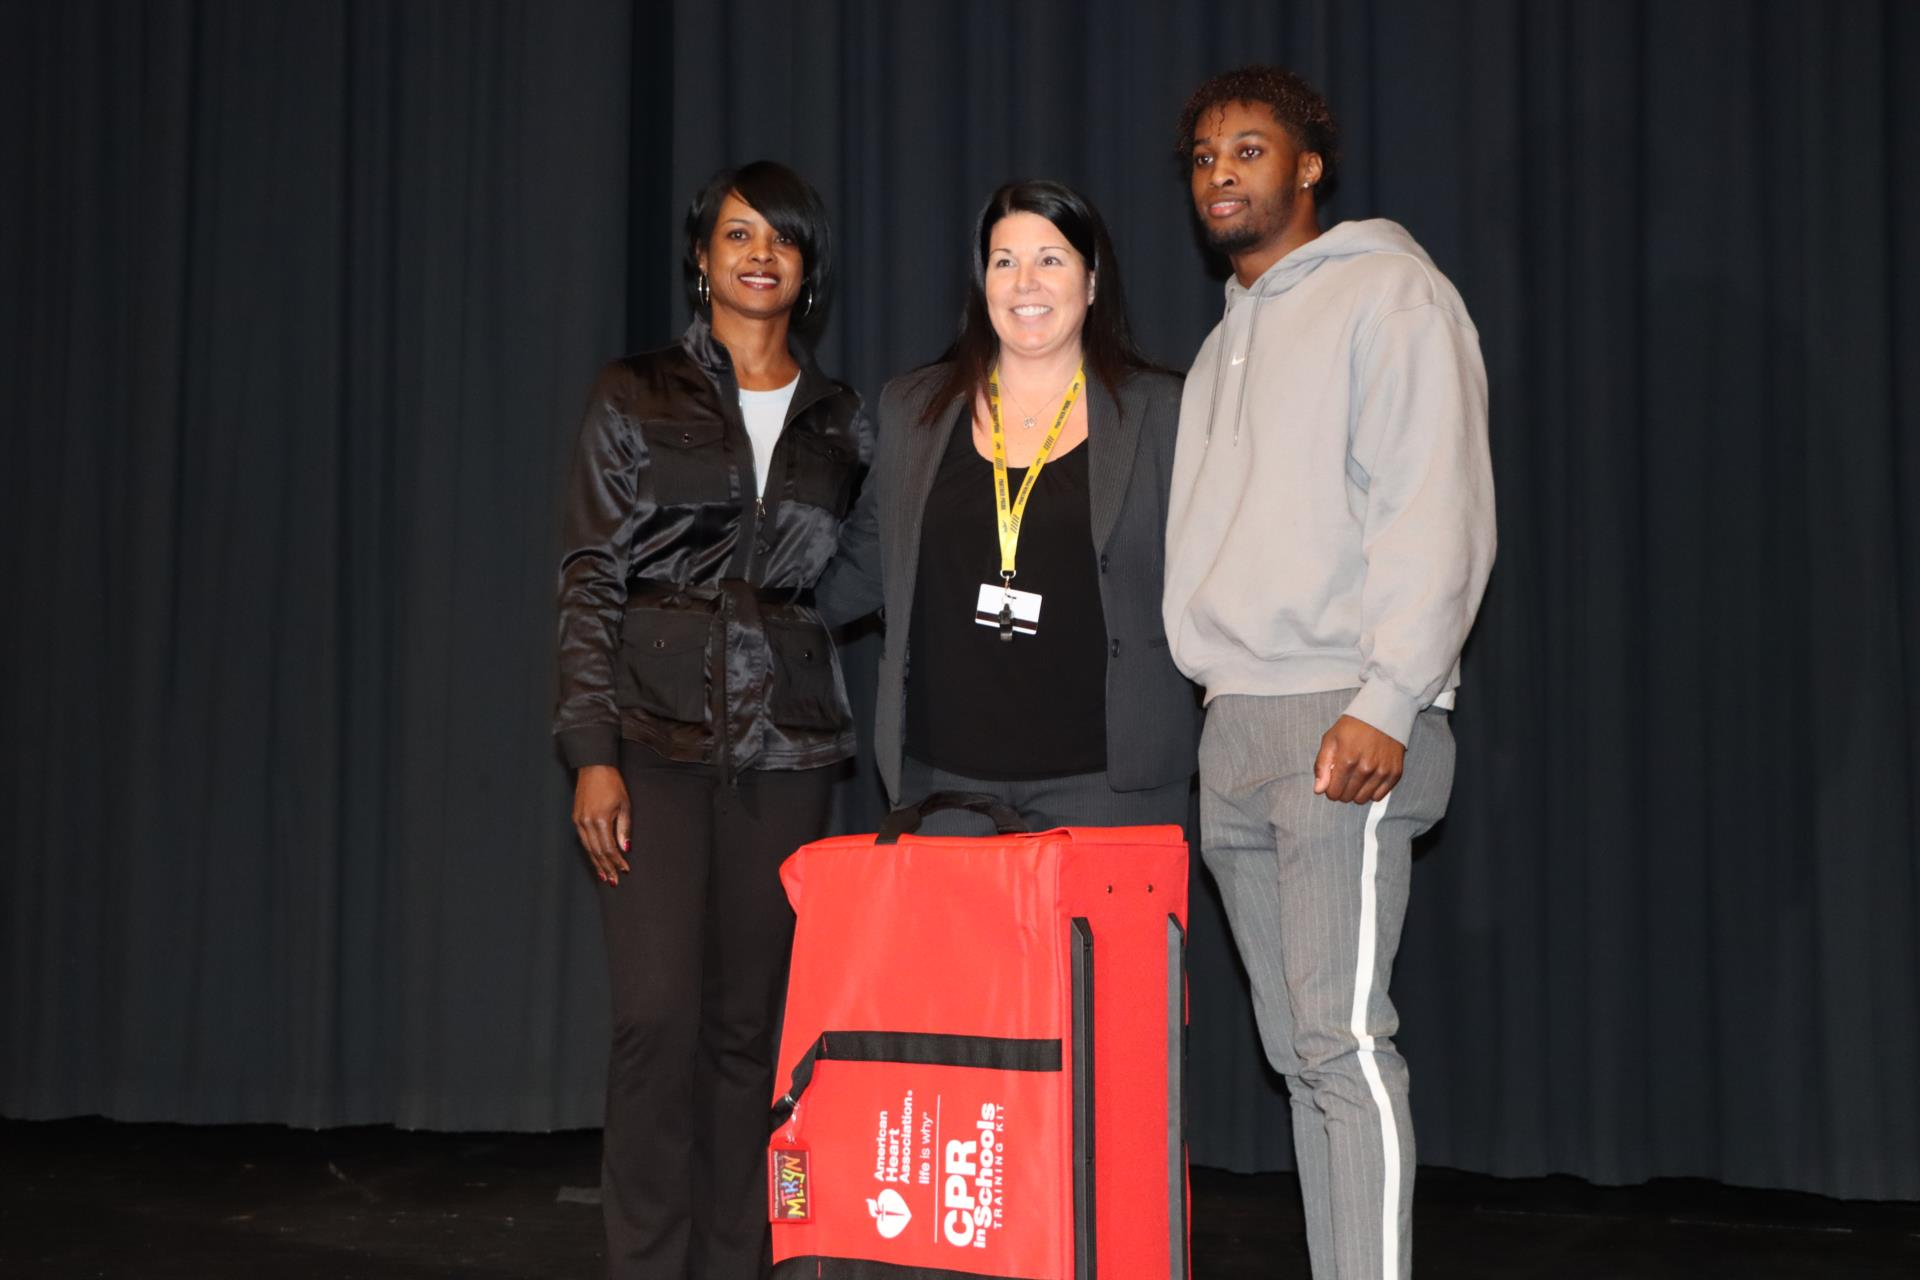 CPR training kit donation to high school